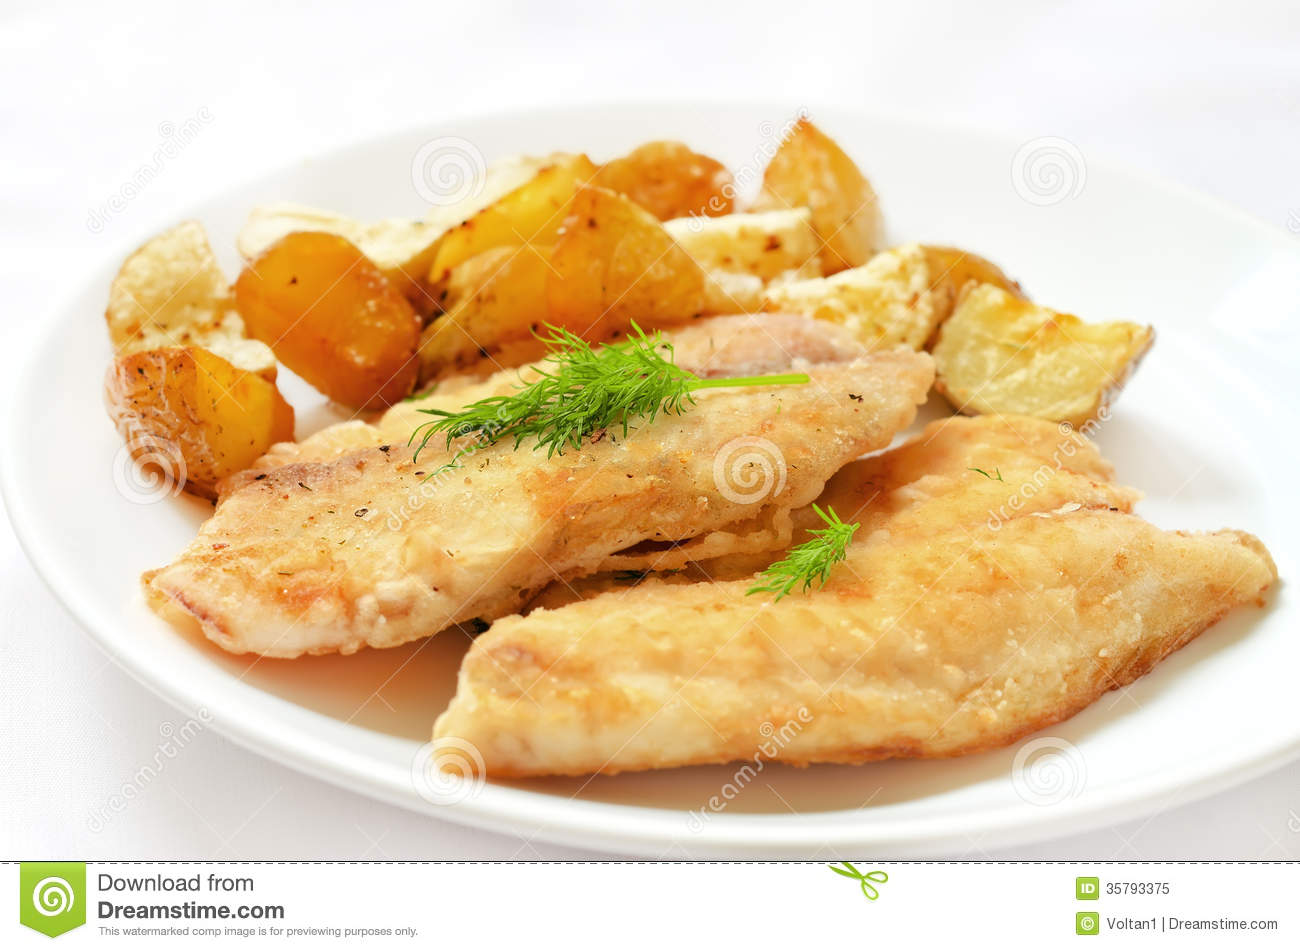 Fried fish fillet with baked potatoes royalty free stock for Fried fish fillet